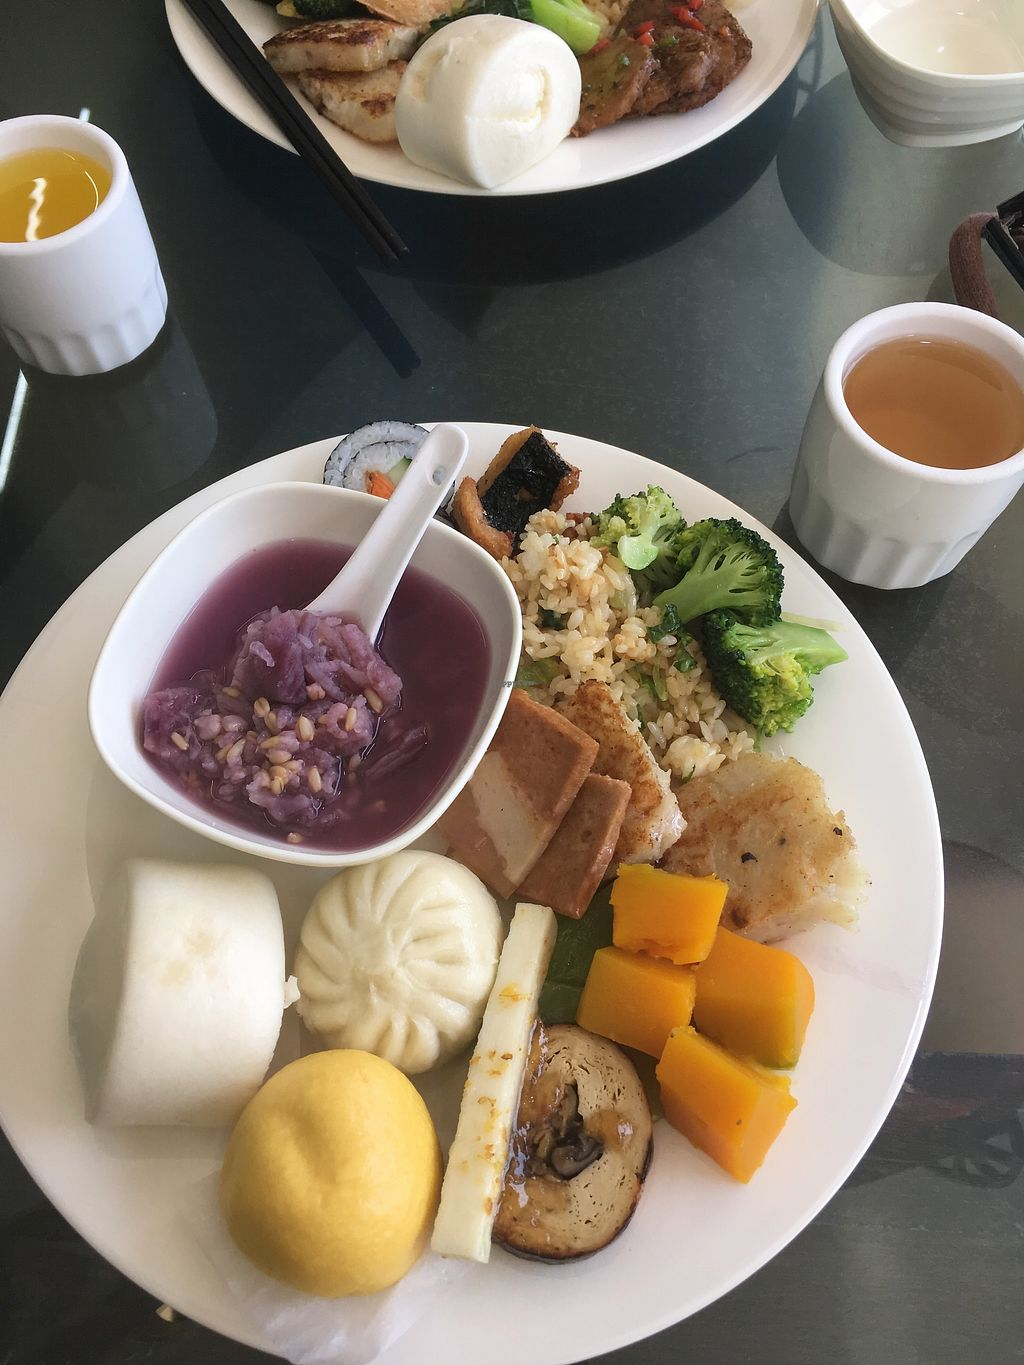 "Photo of Dengpin Vegetarian Foods  by <a href=""/members/profile/jojoinbrighton"">jojoinbrighton</a> <br/>Buffet plate  <br/> November 7, 2017  - <a href='/contact/abuse/image/6603/322870'>Report</a>"